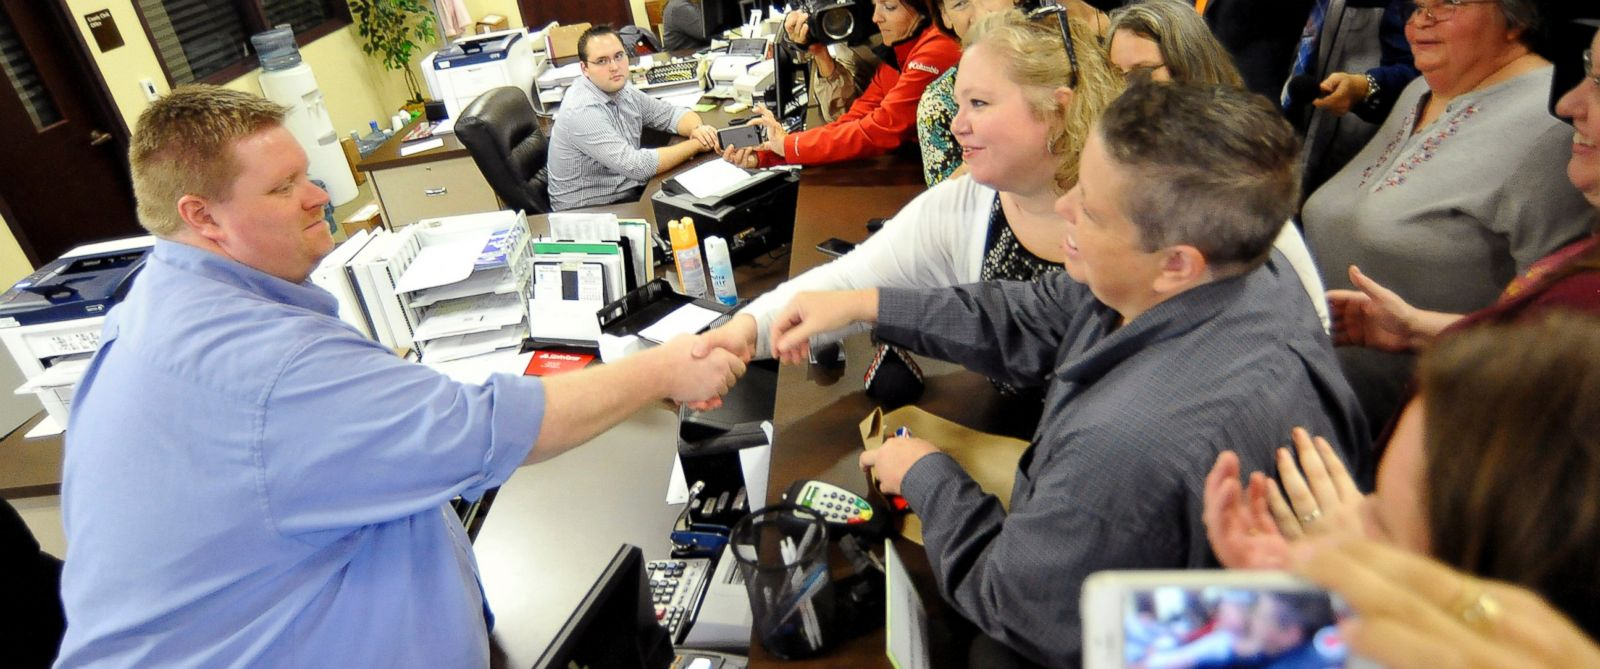 PHOTO: Deputy clerk Brian Mason, left, shakes hands with Carmen and Shannon Wampler-Collins after issuing them a marriage license at Rowan County Clerks Office in Morehead, Kentucky, Sept.14, 2015.